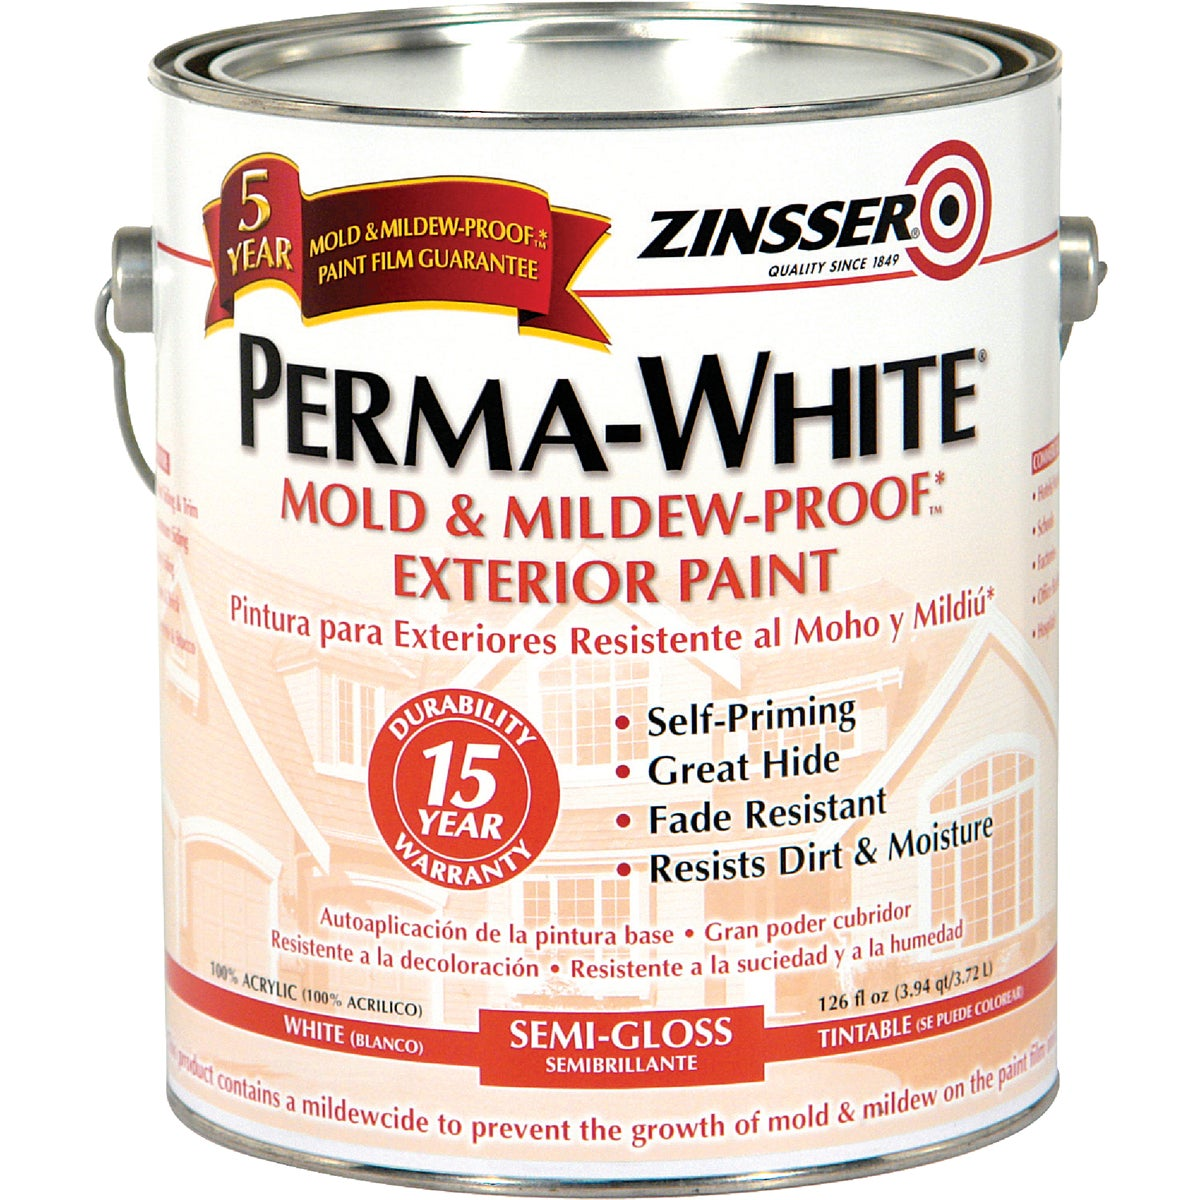 EXT S/G WHT MILDEW PAINT - 3131 by Rustoleum